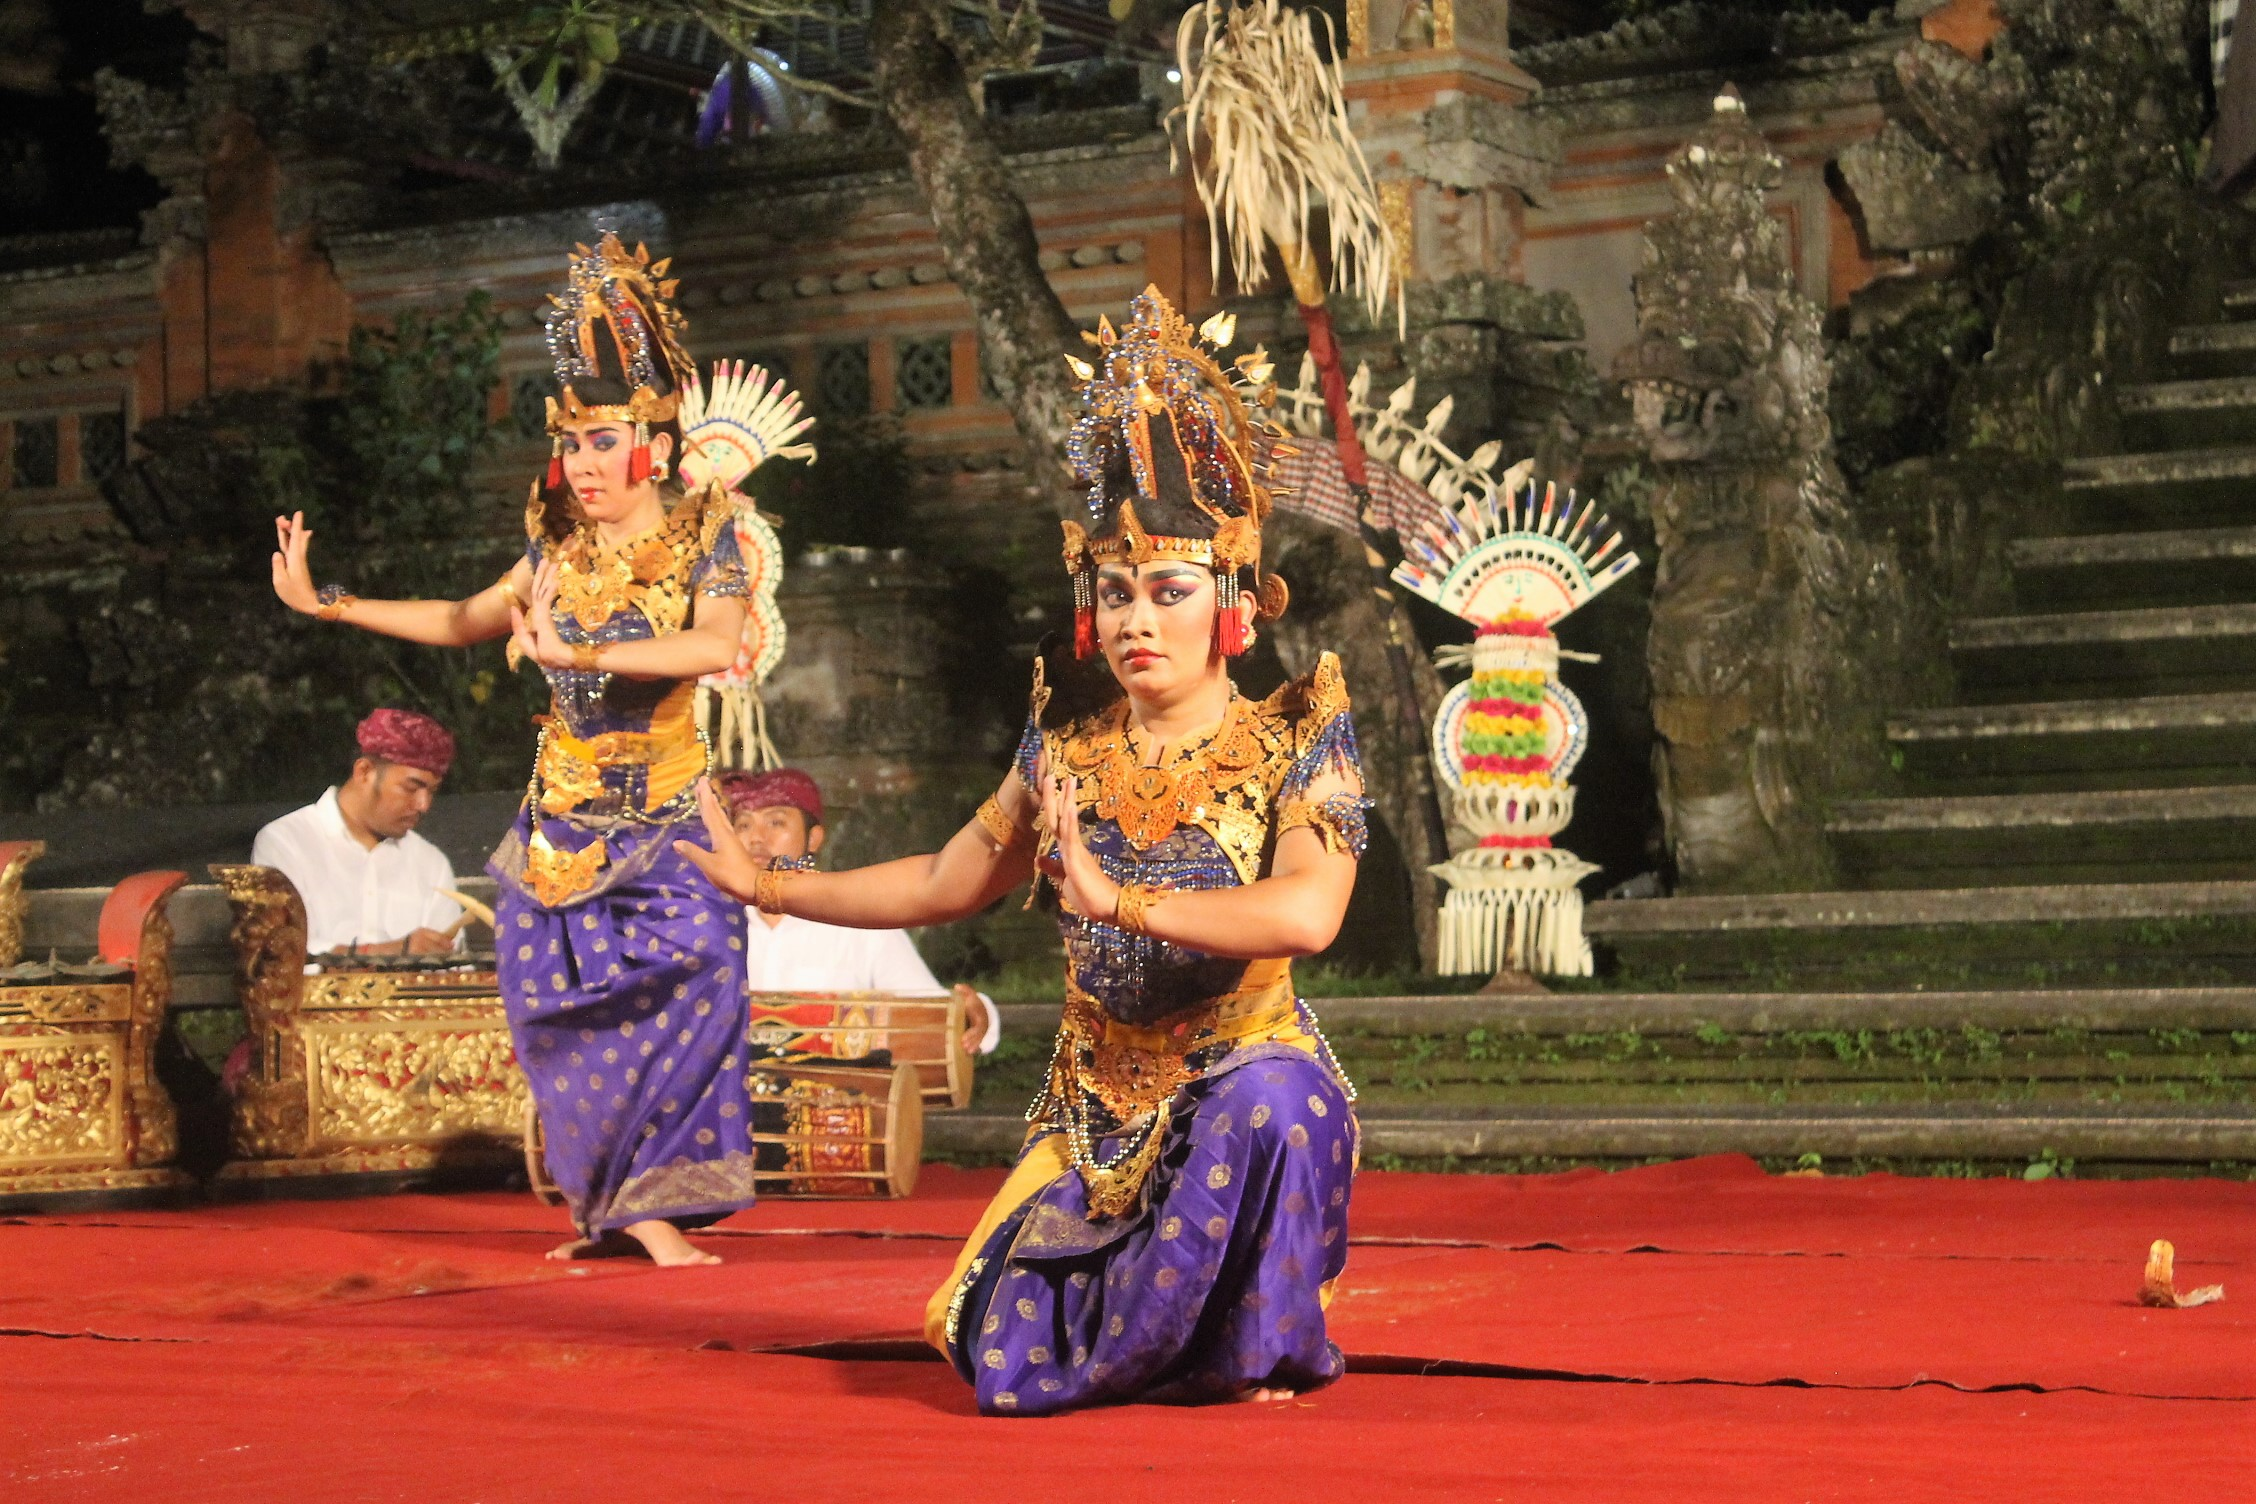 Balinese Legong Dance or courtship dance taken place at Saraswati temple Water Palace